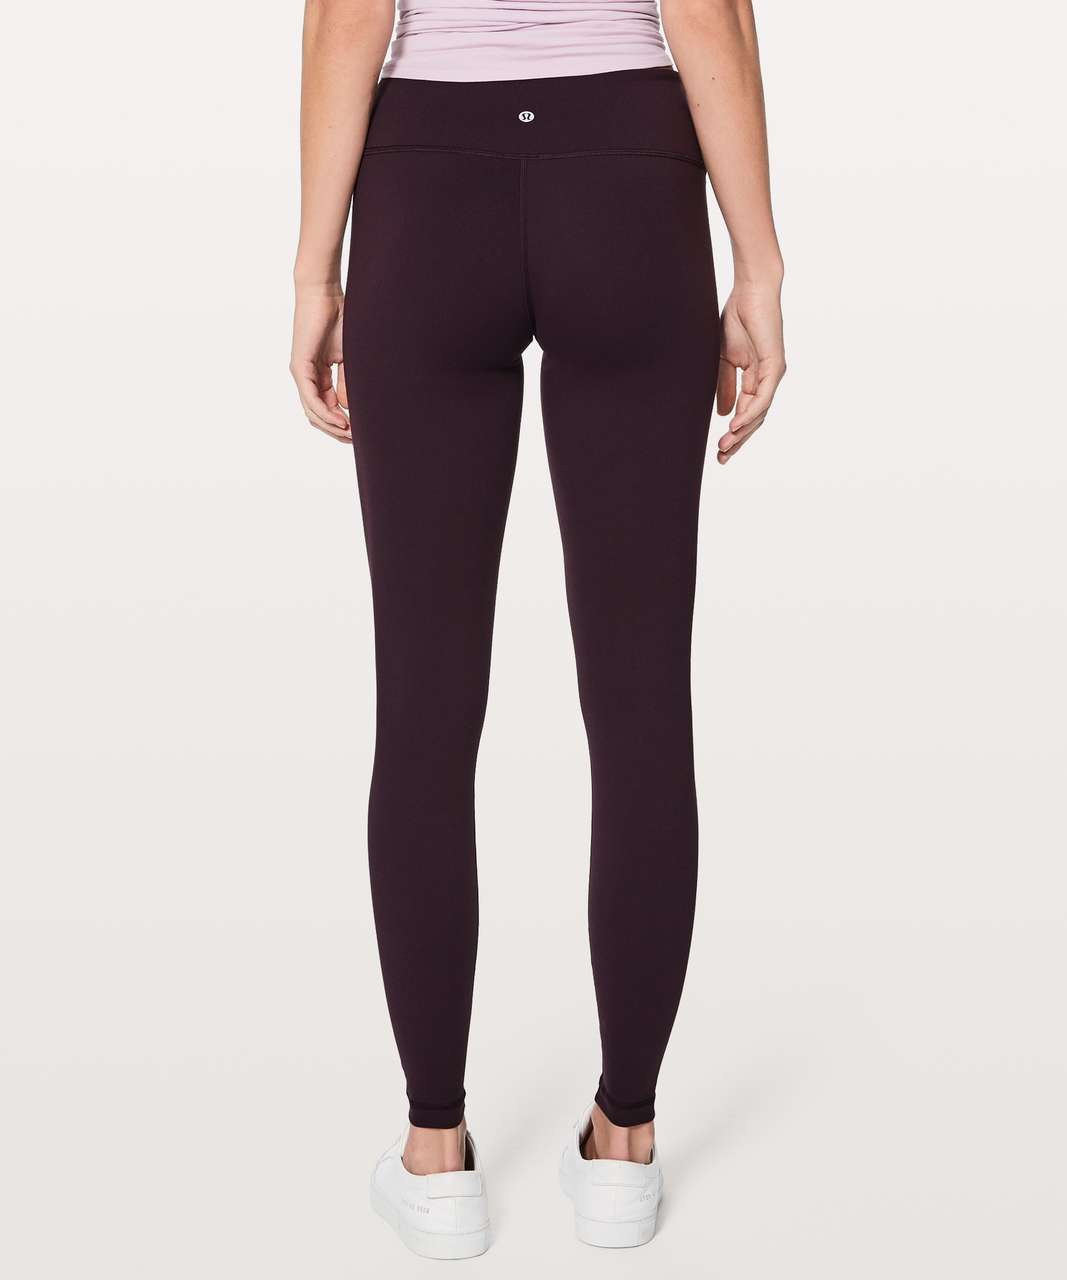 68aed42b8f33f Lululemon Wunder Under Low-Rise Tight *Full-On Luon 28